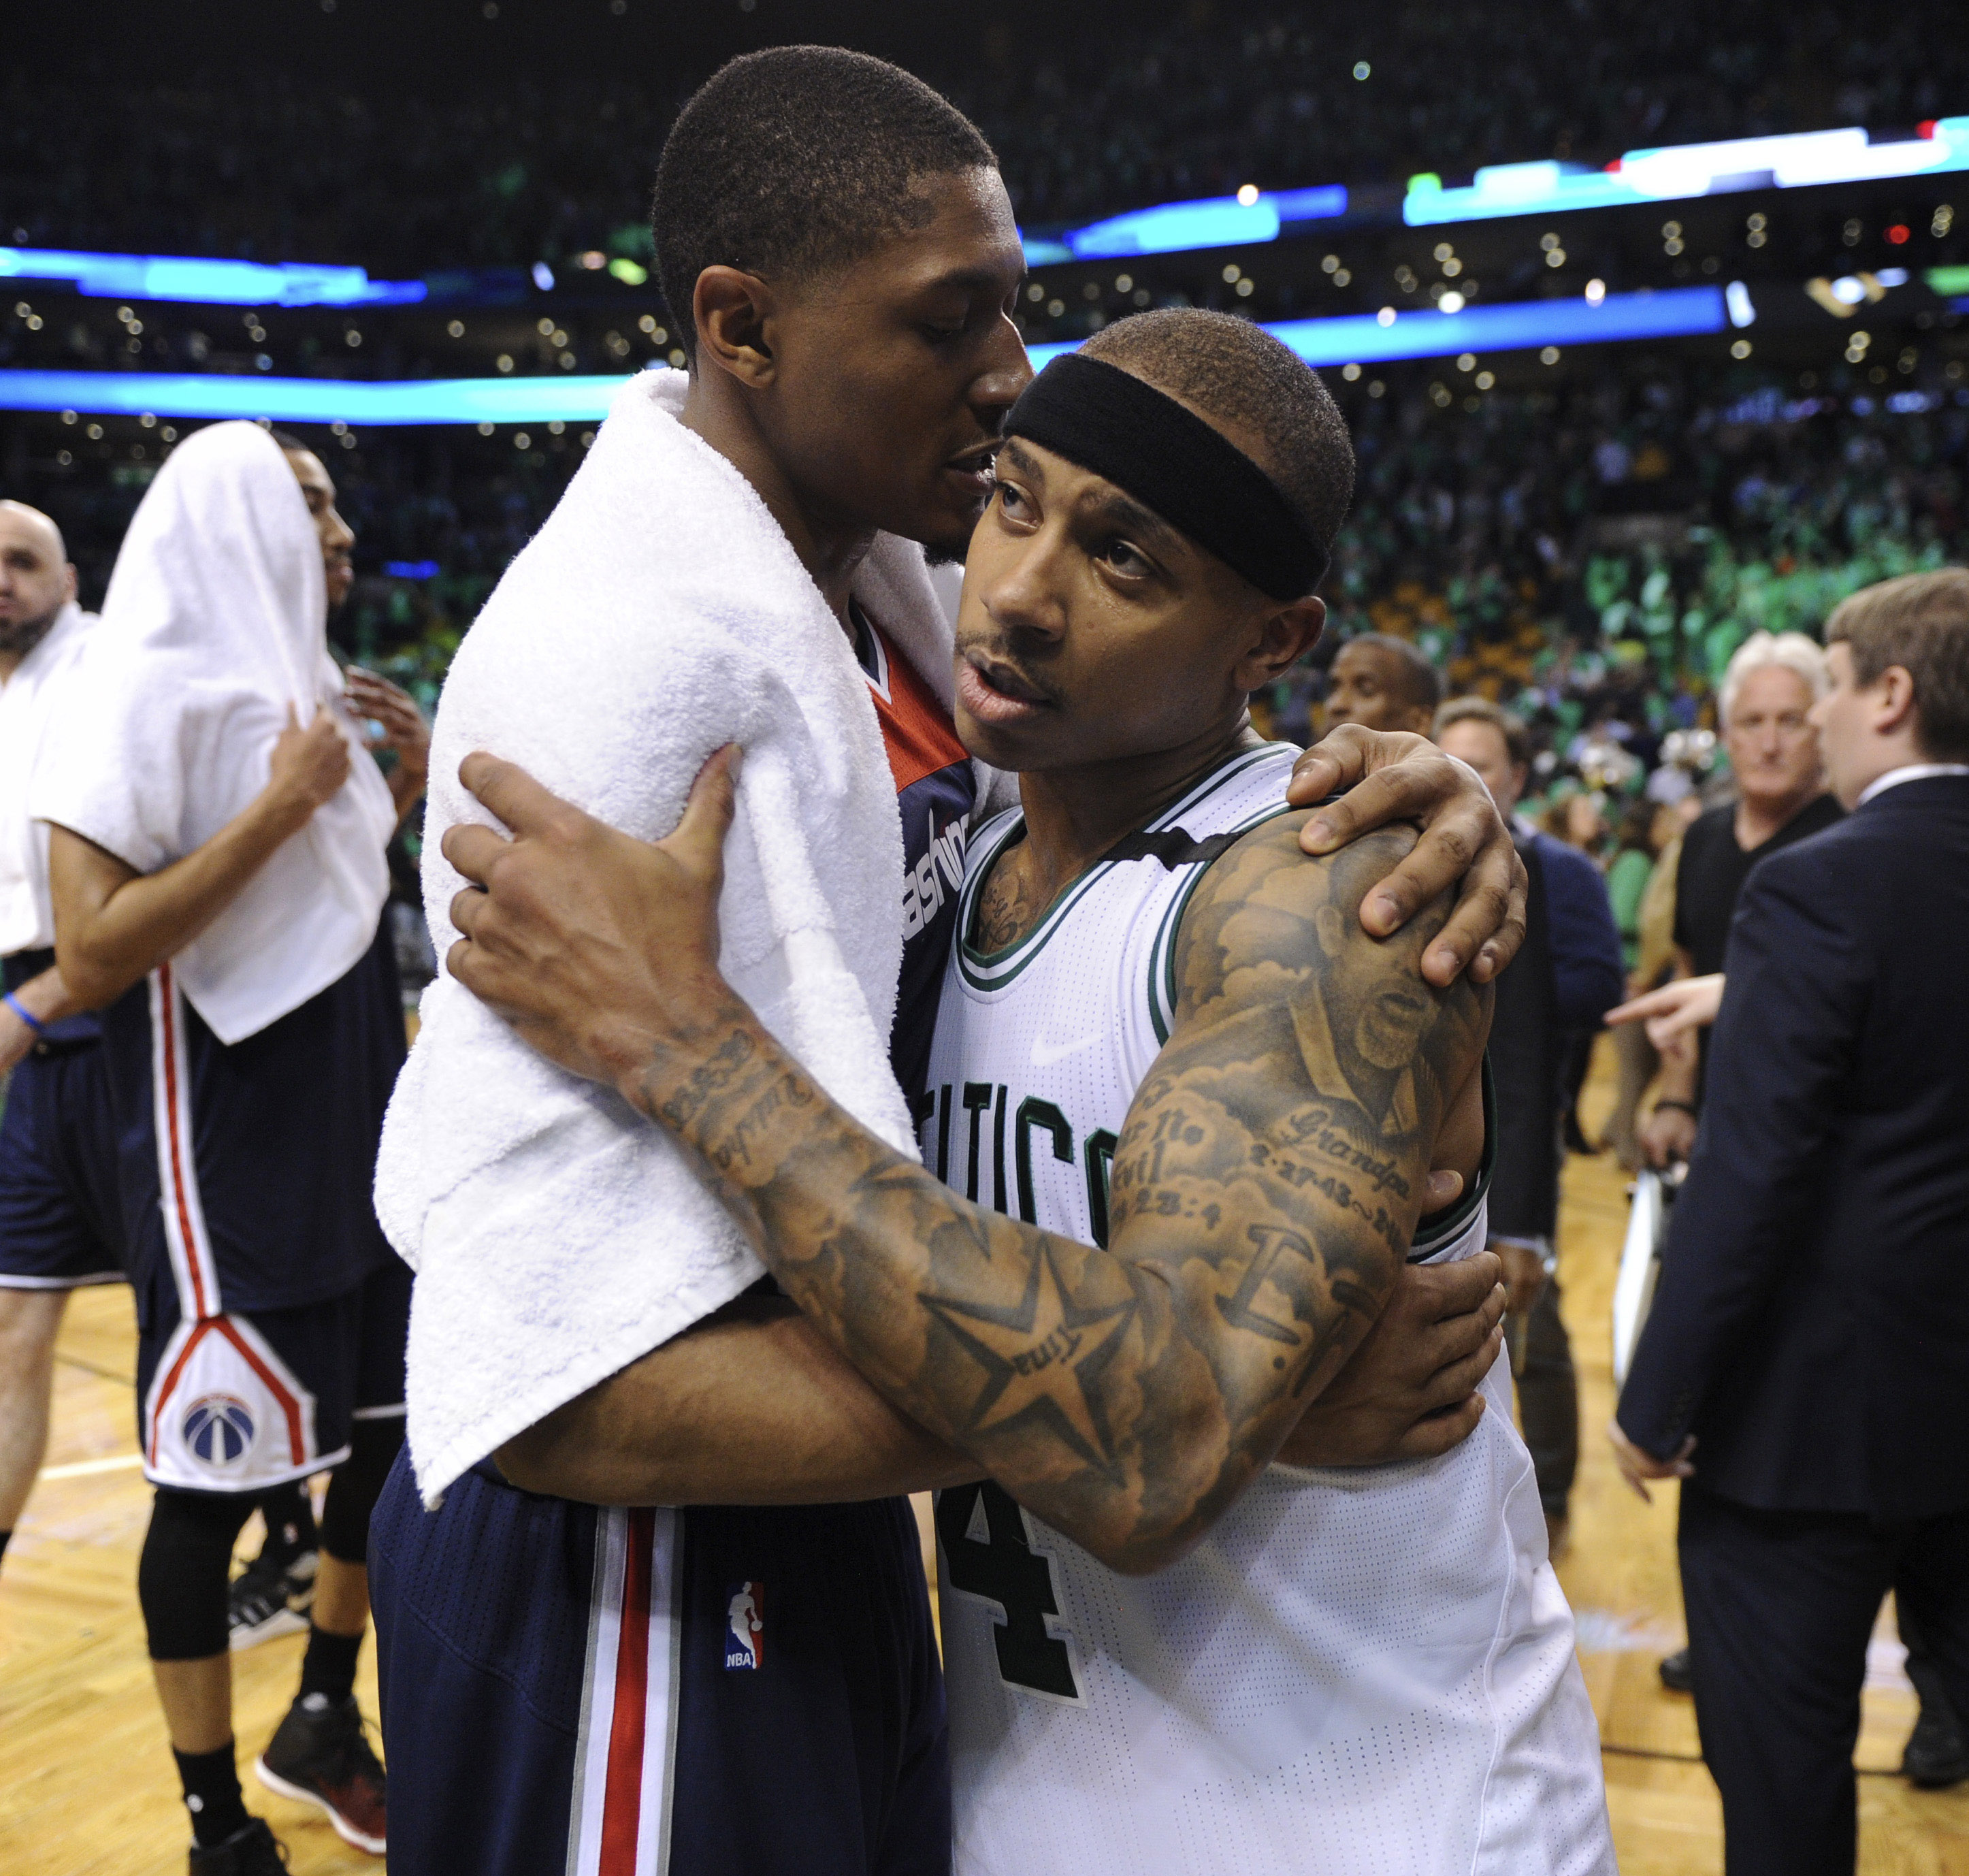 10059568-nba-playoffs-washington-wizards-at-boston-celtics